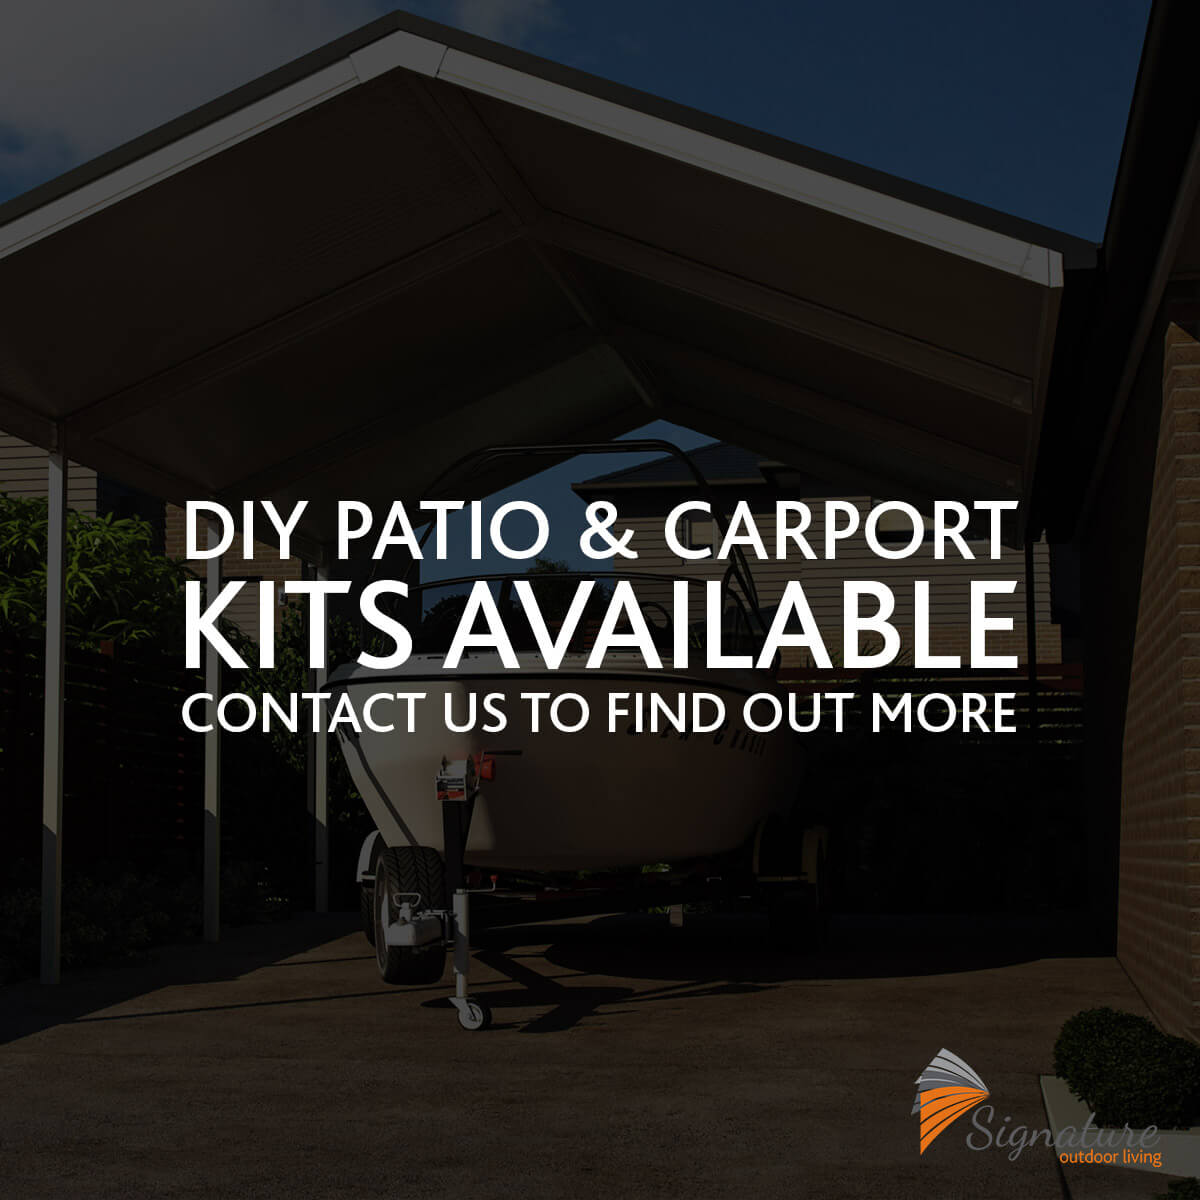 KIY Patio and Carport Kits Contact Signature Outdoor Living to find out more